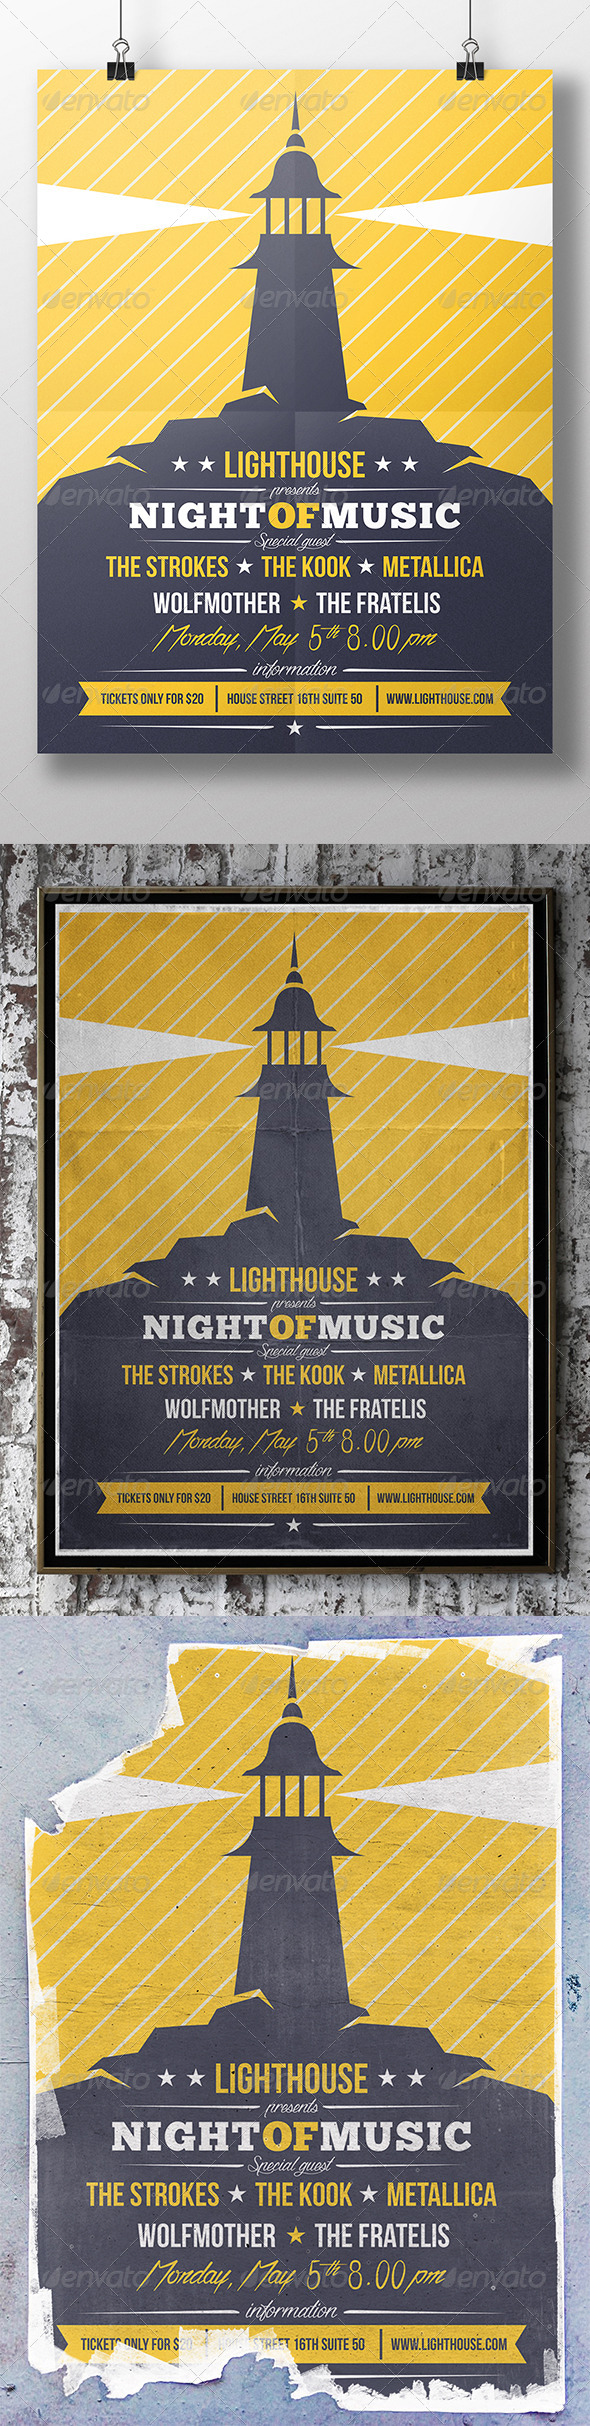 Lighthouse Flyer